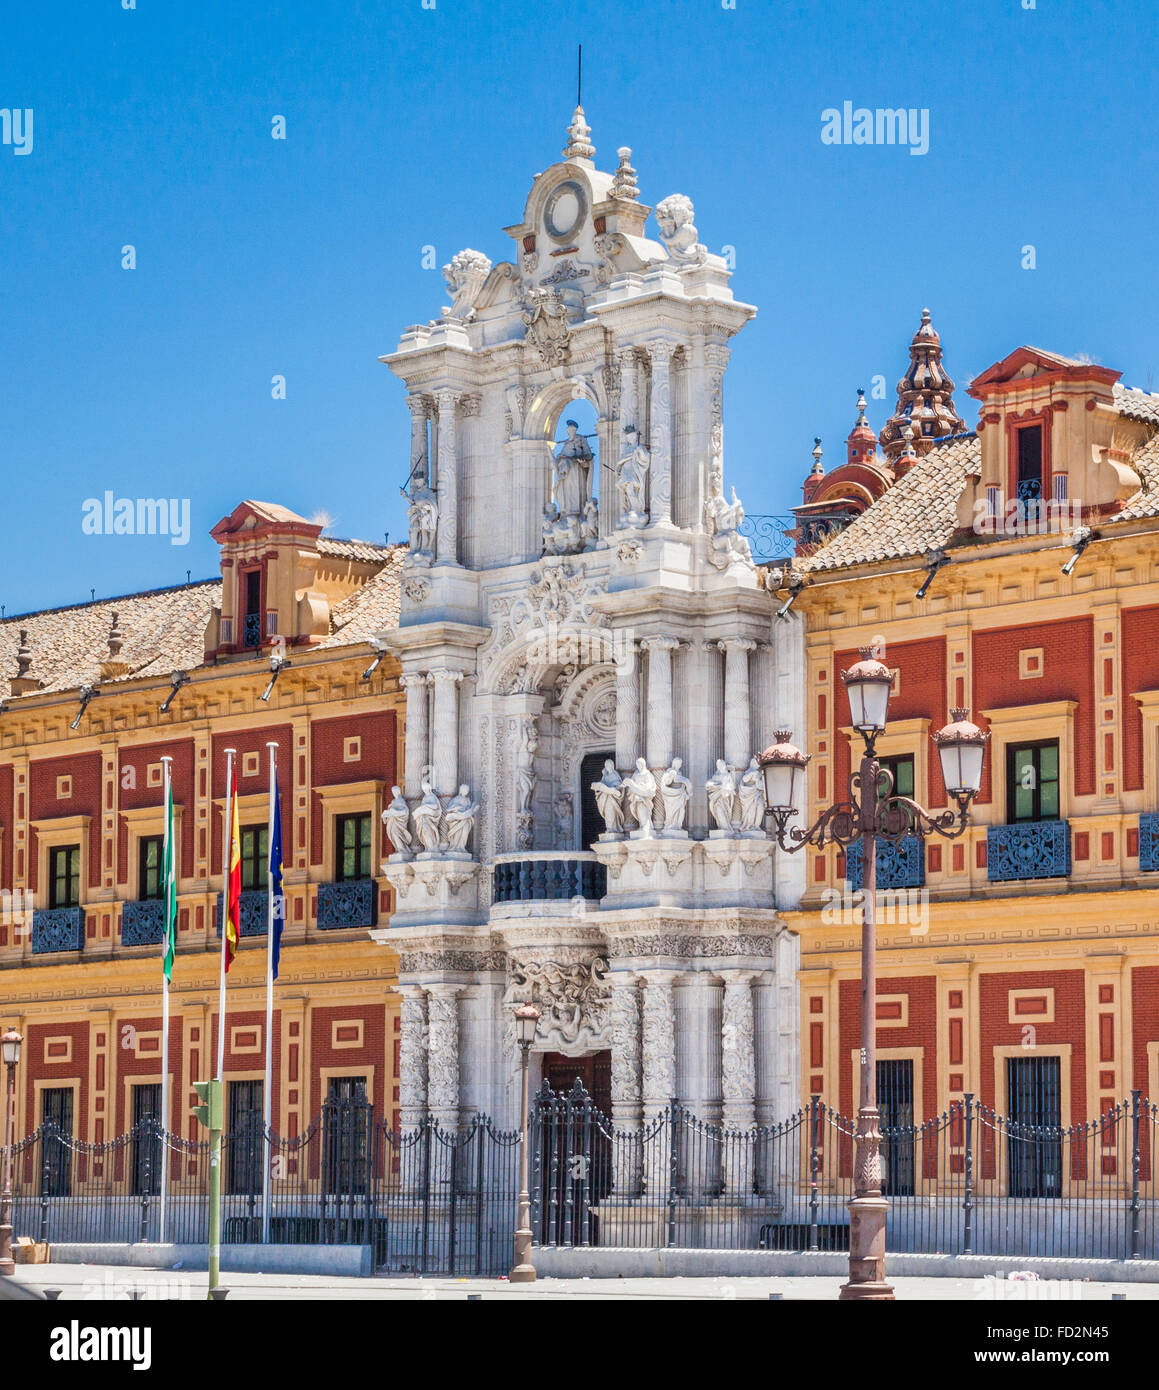 Spain, Andalusia, Province of Seville, Seville, Baroque architecture of the Palacio San Telmo - Stock Image